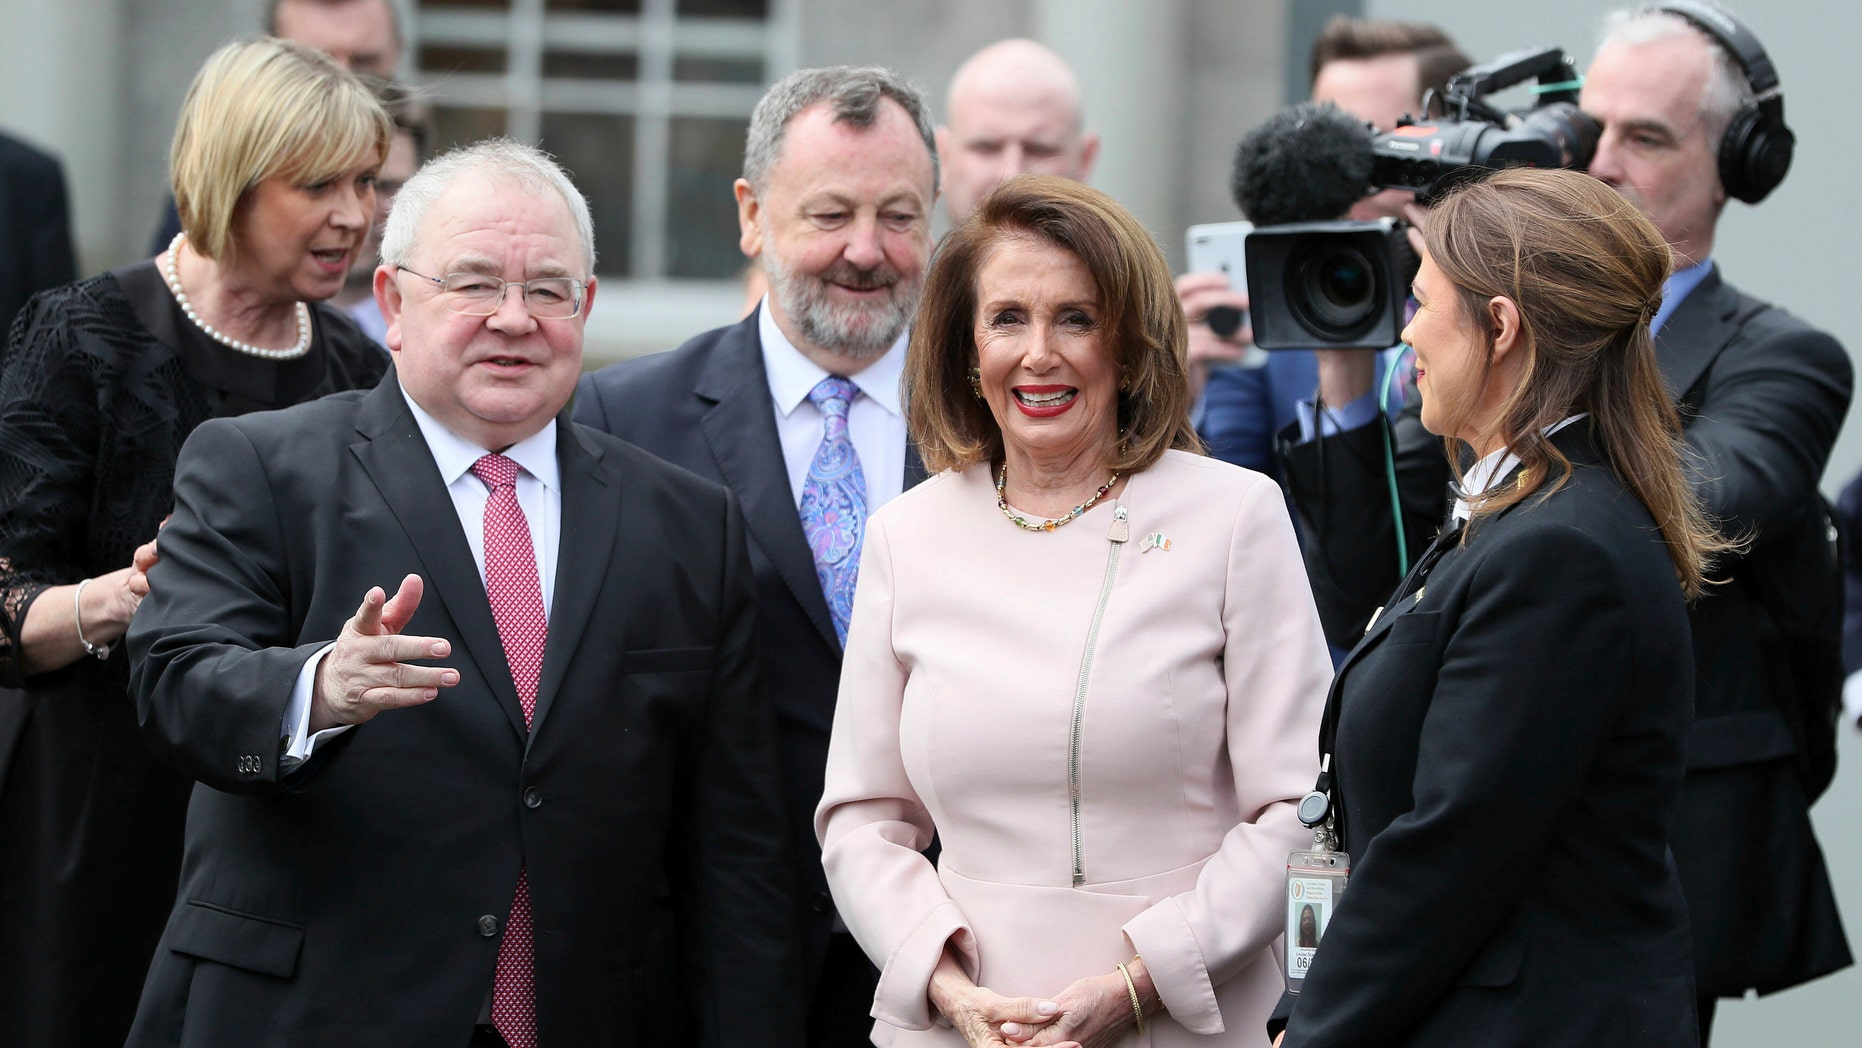 US House of Representatives speaker Nancy Pelosi is greeted by Chairperson of the lower house of parliament Sean O Fearghail, left, on arrival at Leinster House in Dublin to deliver an address in Dublin, Ireland, Wednesday April 17, 2019. (Brian Lawless, via AP)